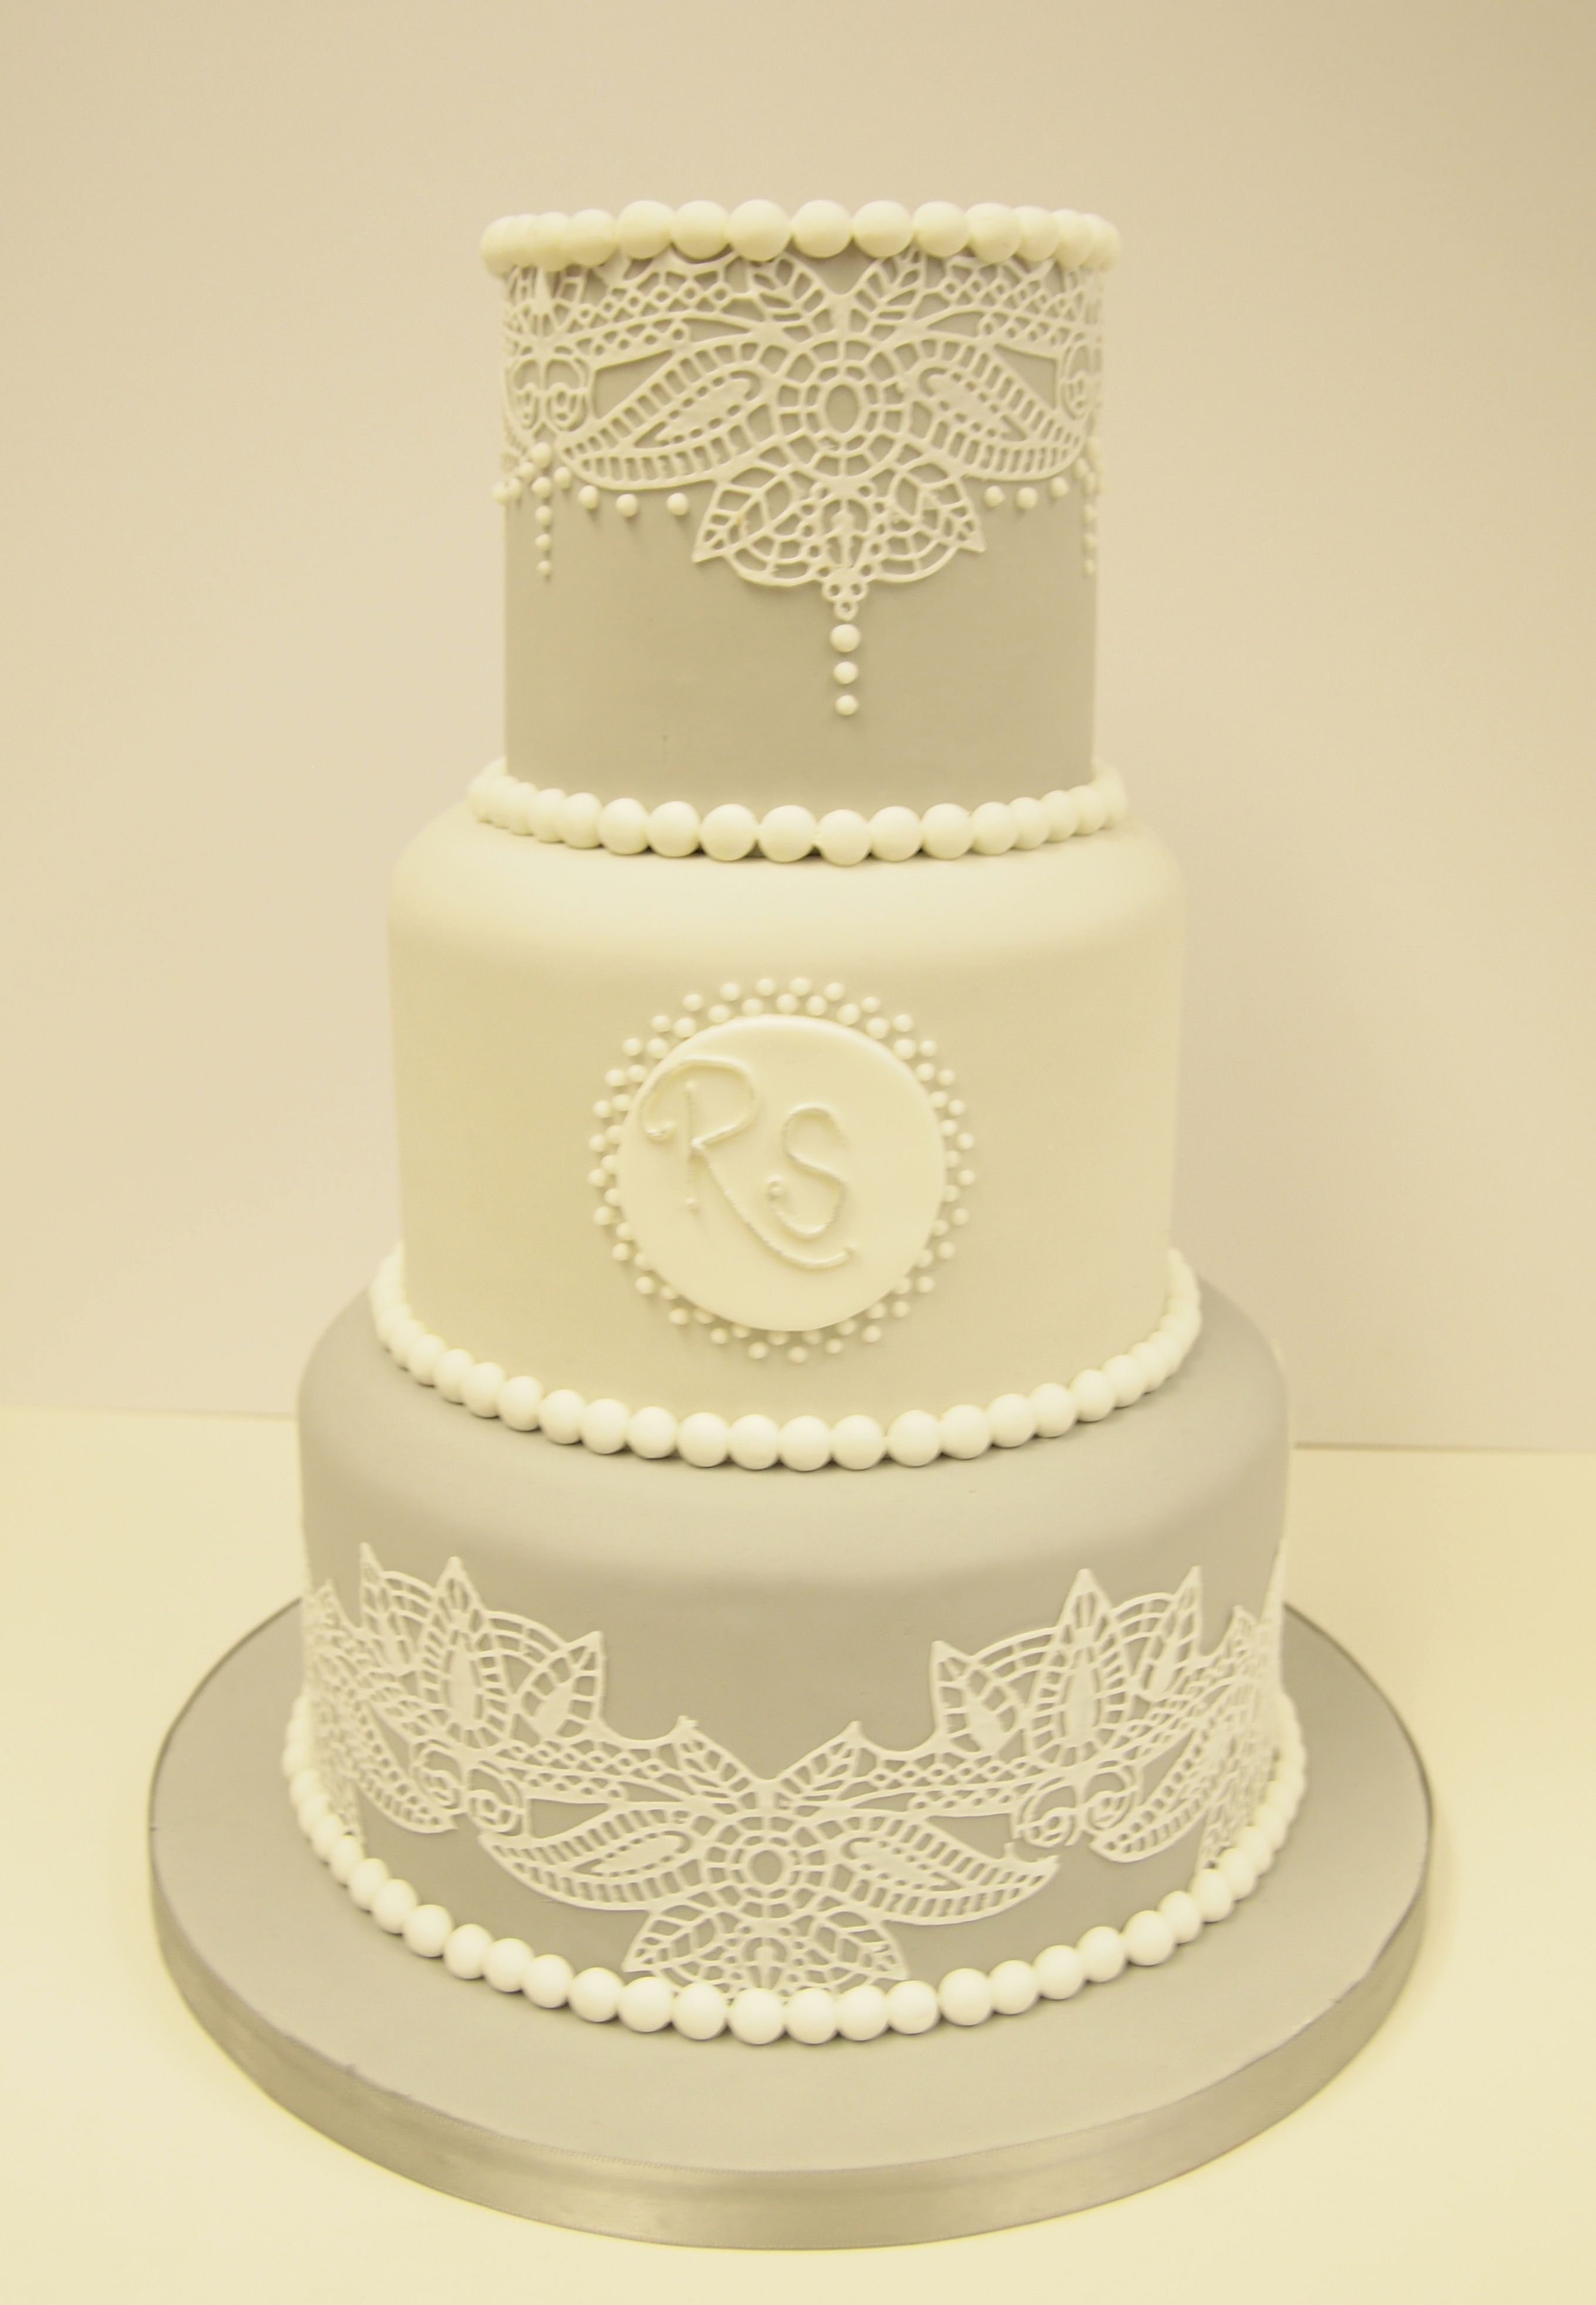 A Three Tier Grey Wedding Cake with Edible Lace Detailing by Bath ...